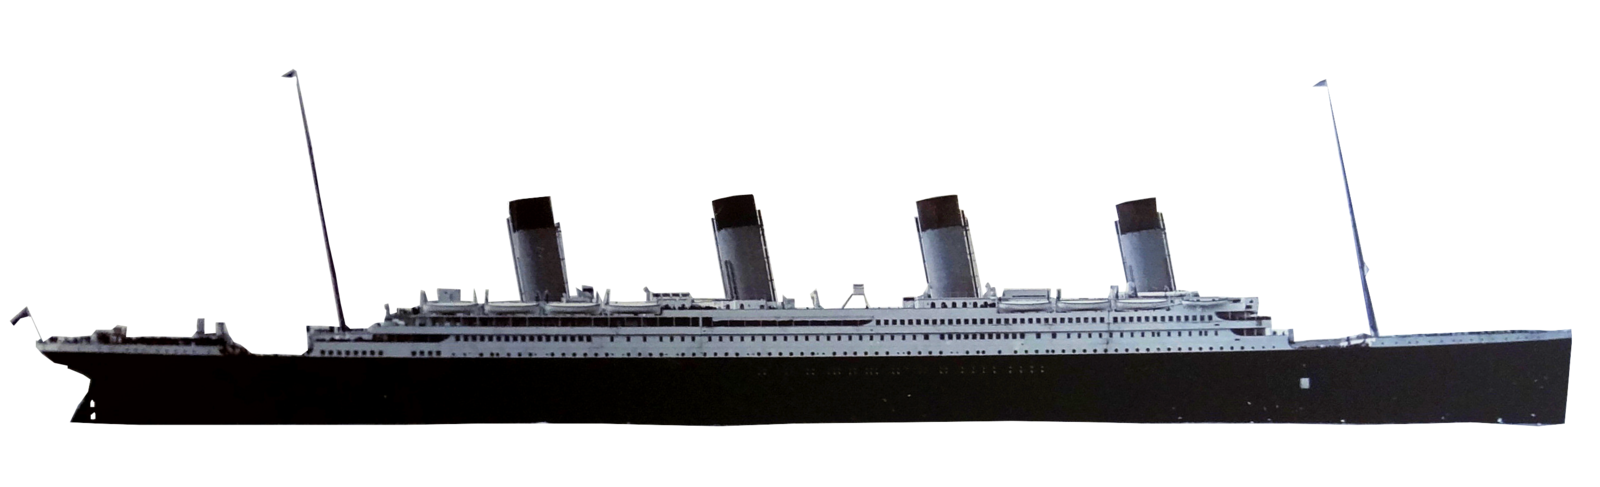 Titanic ship png. Rms by olympic on